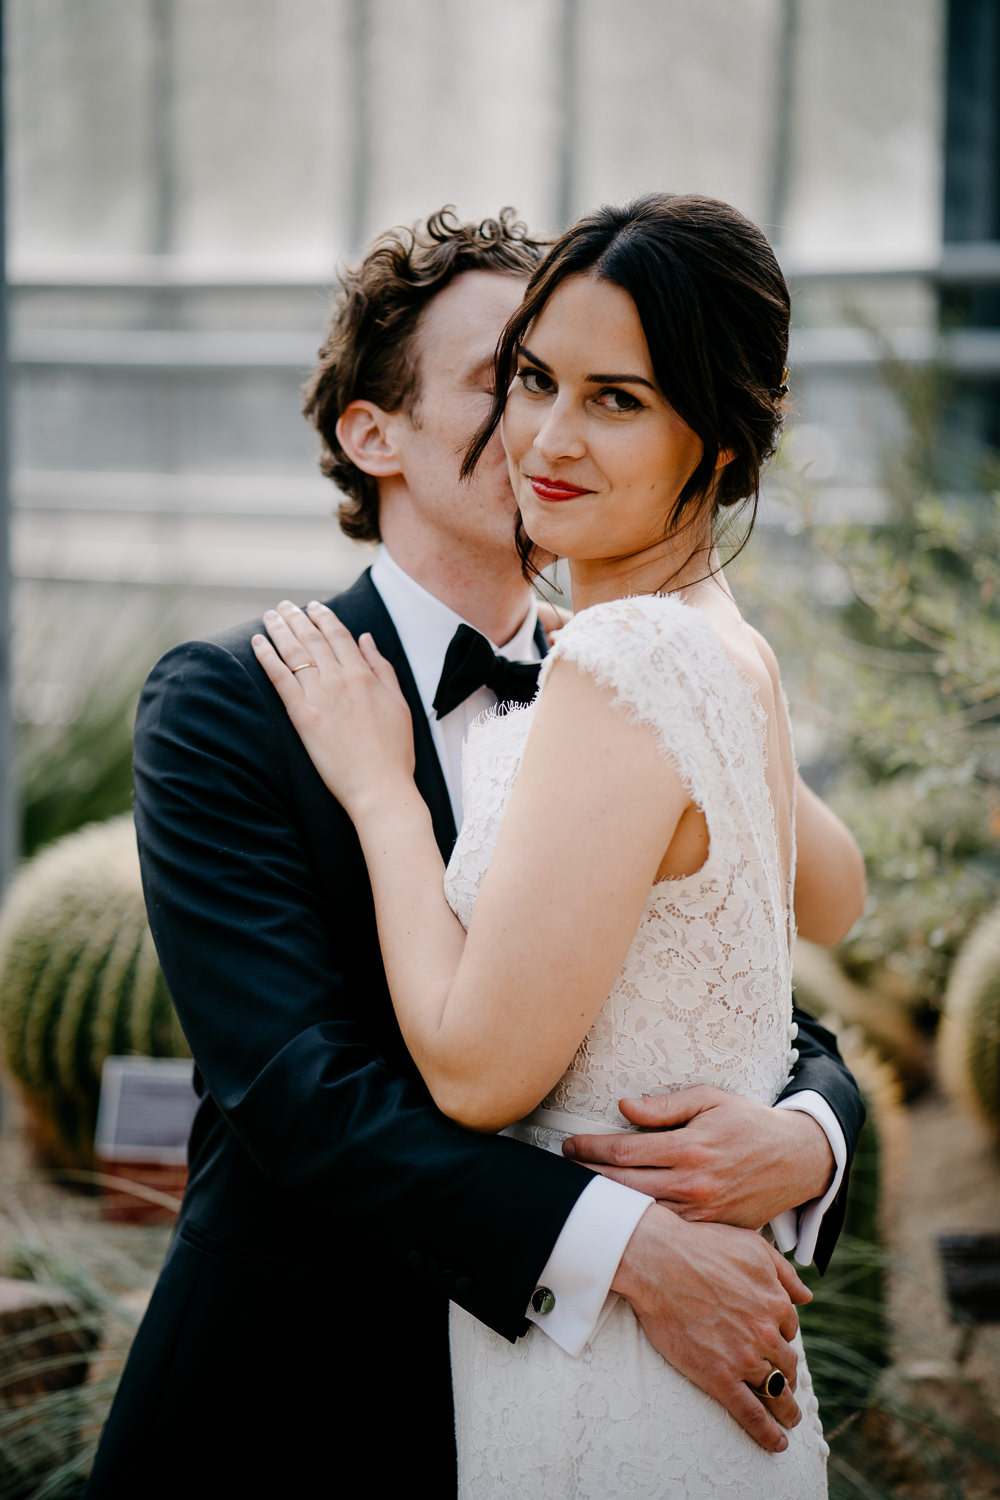 amsterdam wedding photographer couple portrait desert house hortus amsterdam